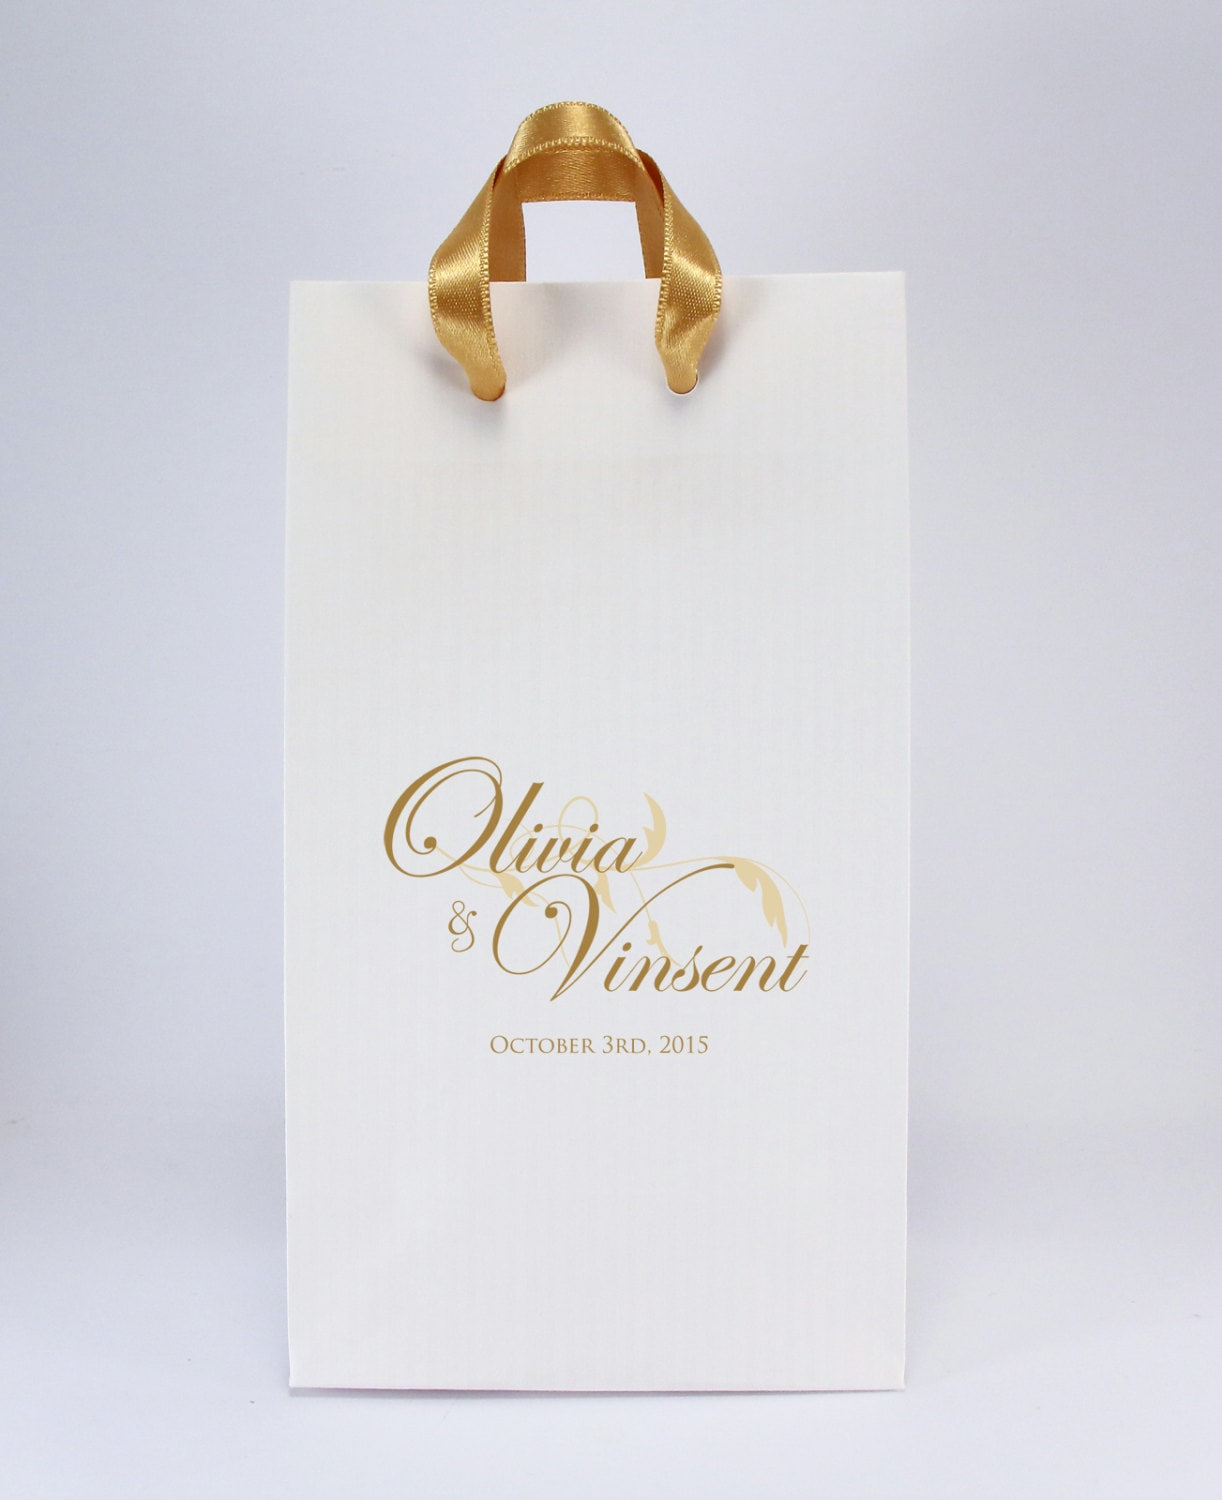 Wedding Gift Bags Printed : 100 Printed Wedding Favor Bags with Handles Personalized